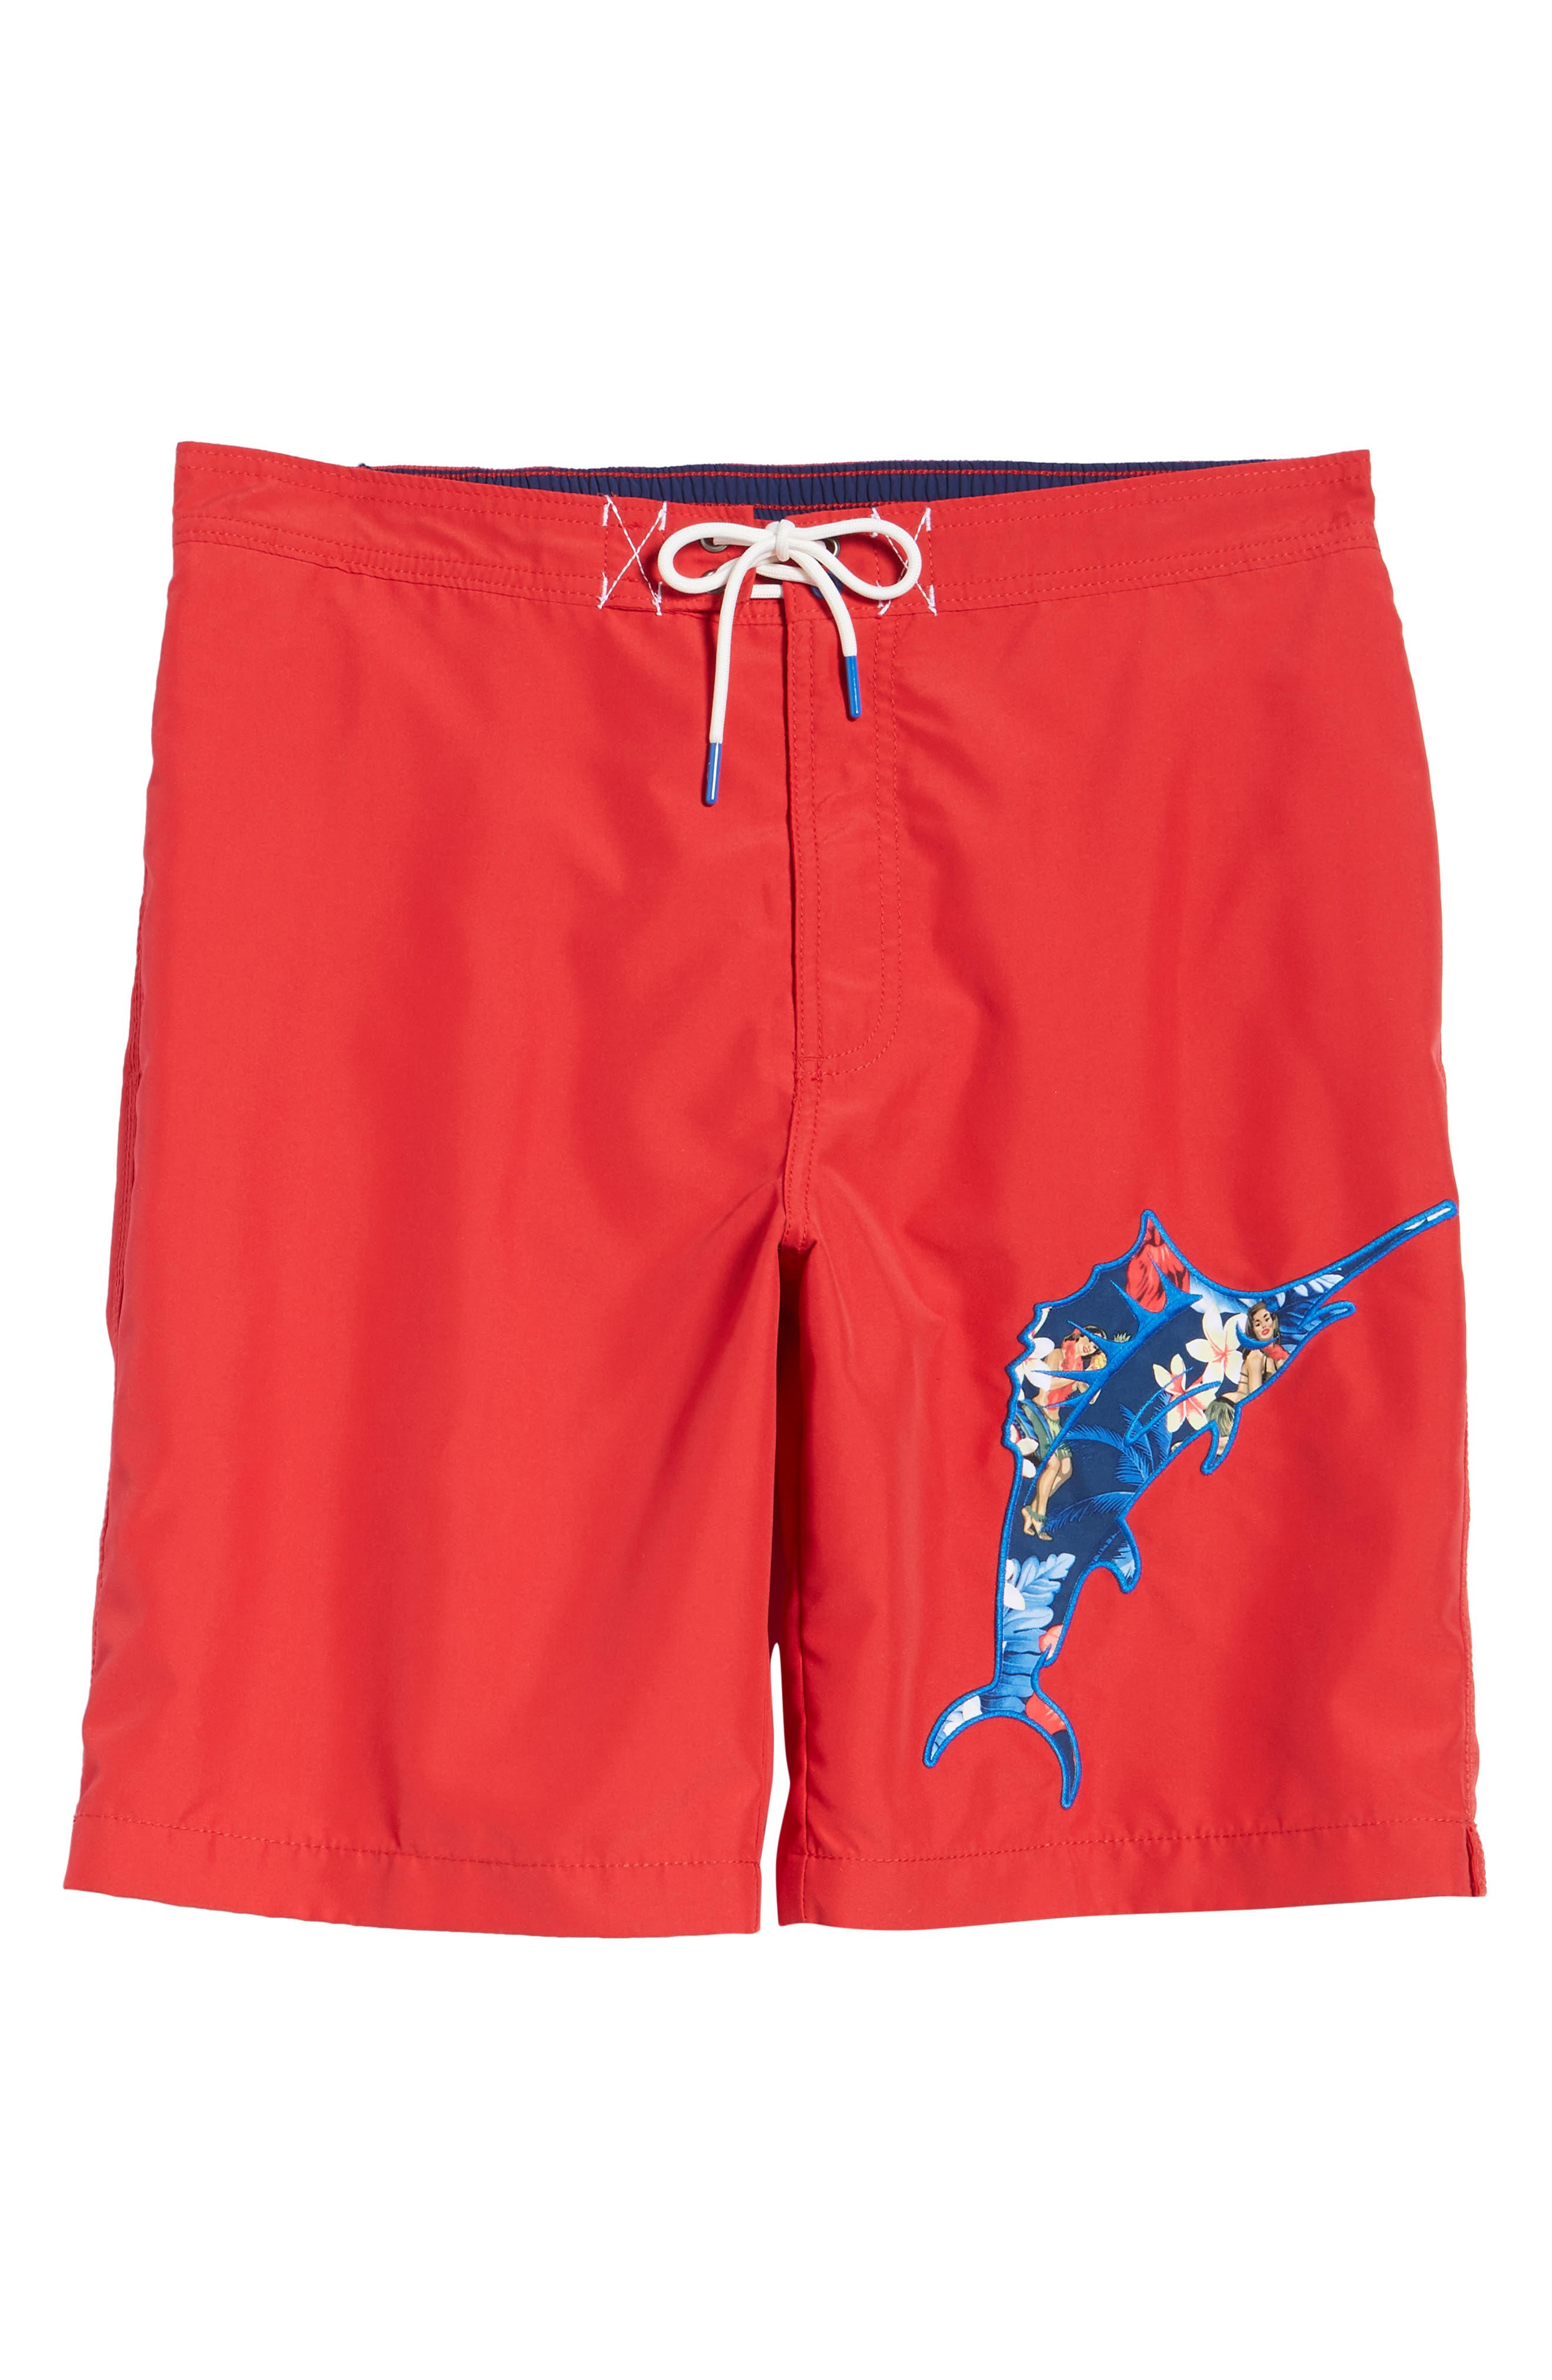 Baja Hula Holiday Marlin Board Shorts,                             Alternate thumbnail 6, color,                             600